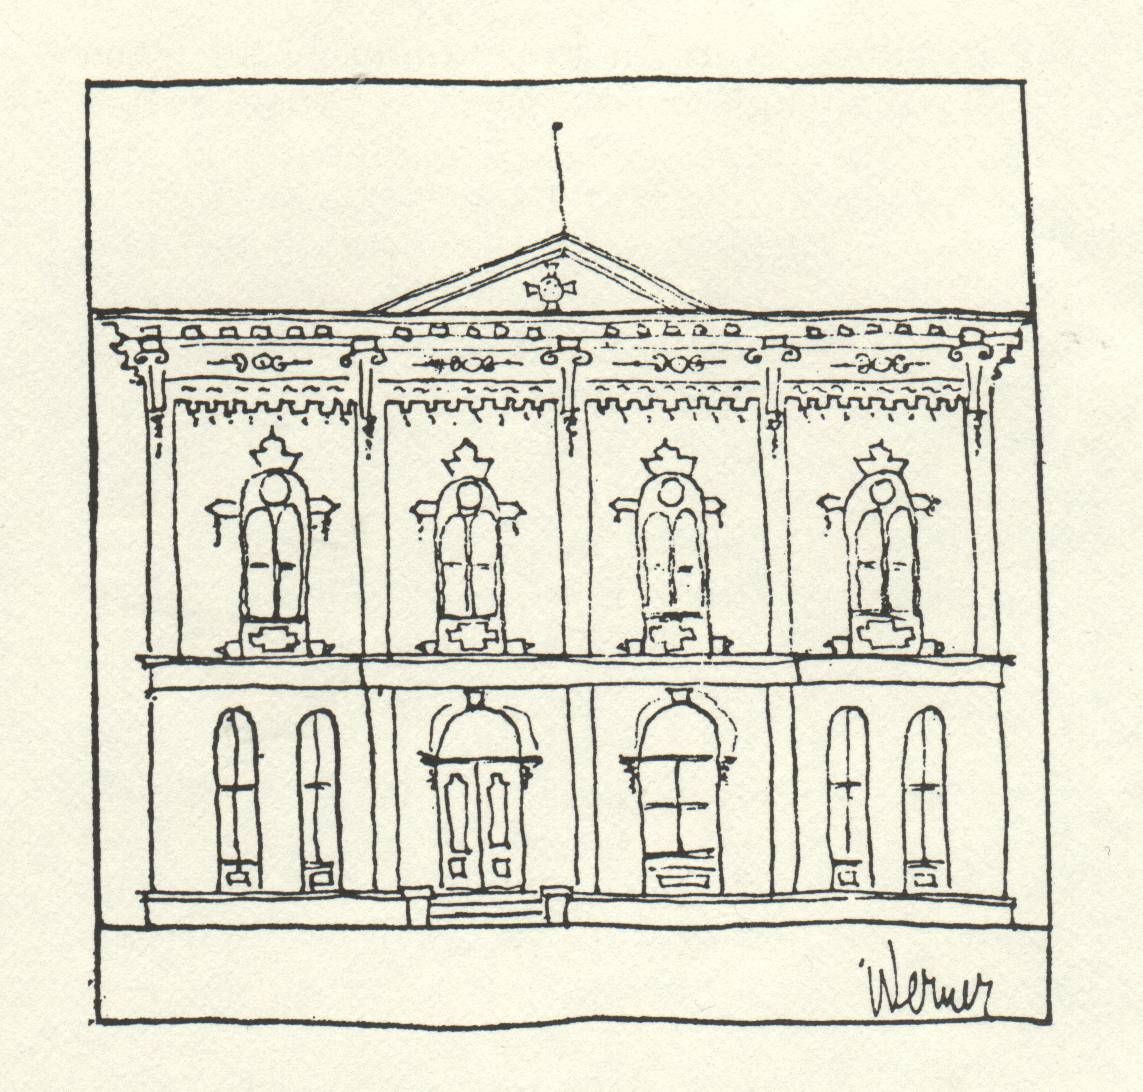 drawing of building with decorative front